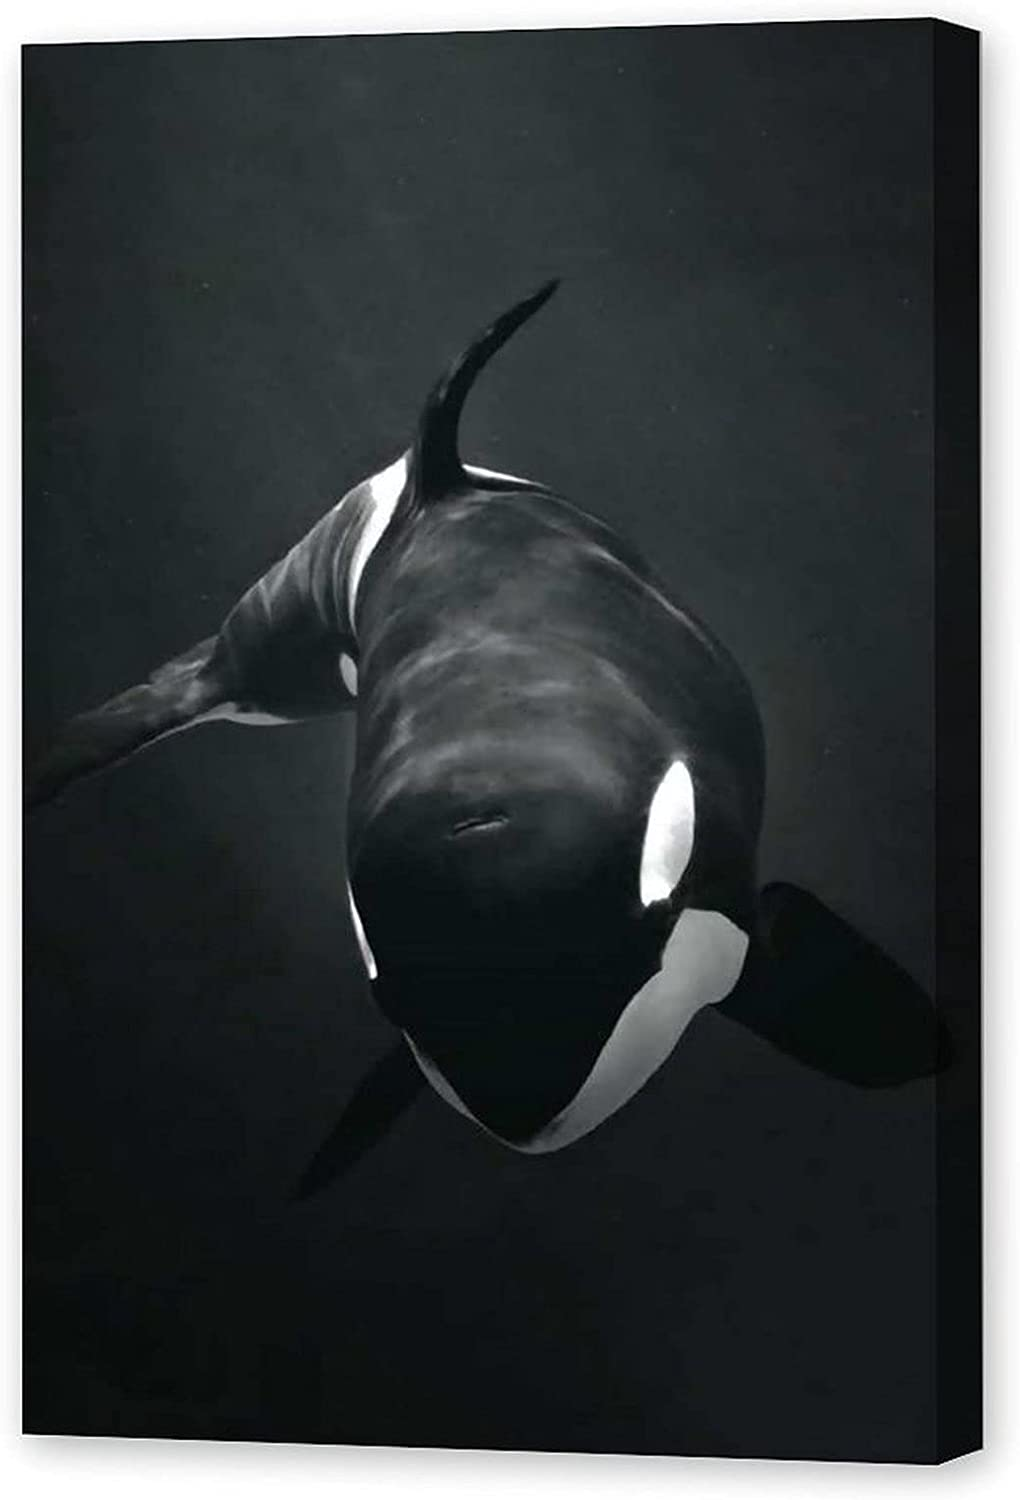 Ocean Wall Decor Killer Whale Orca Sea Underwater Black and White Poster Nice Gift for Kids and Friends 01 Decorative Painting Canvas Wall Art Living Room Posters Bedroom Painting 12x18inch(30x45cm)